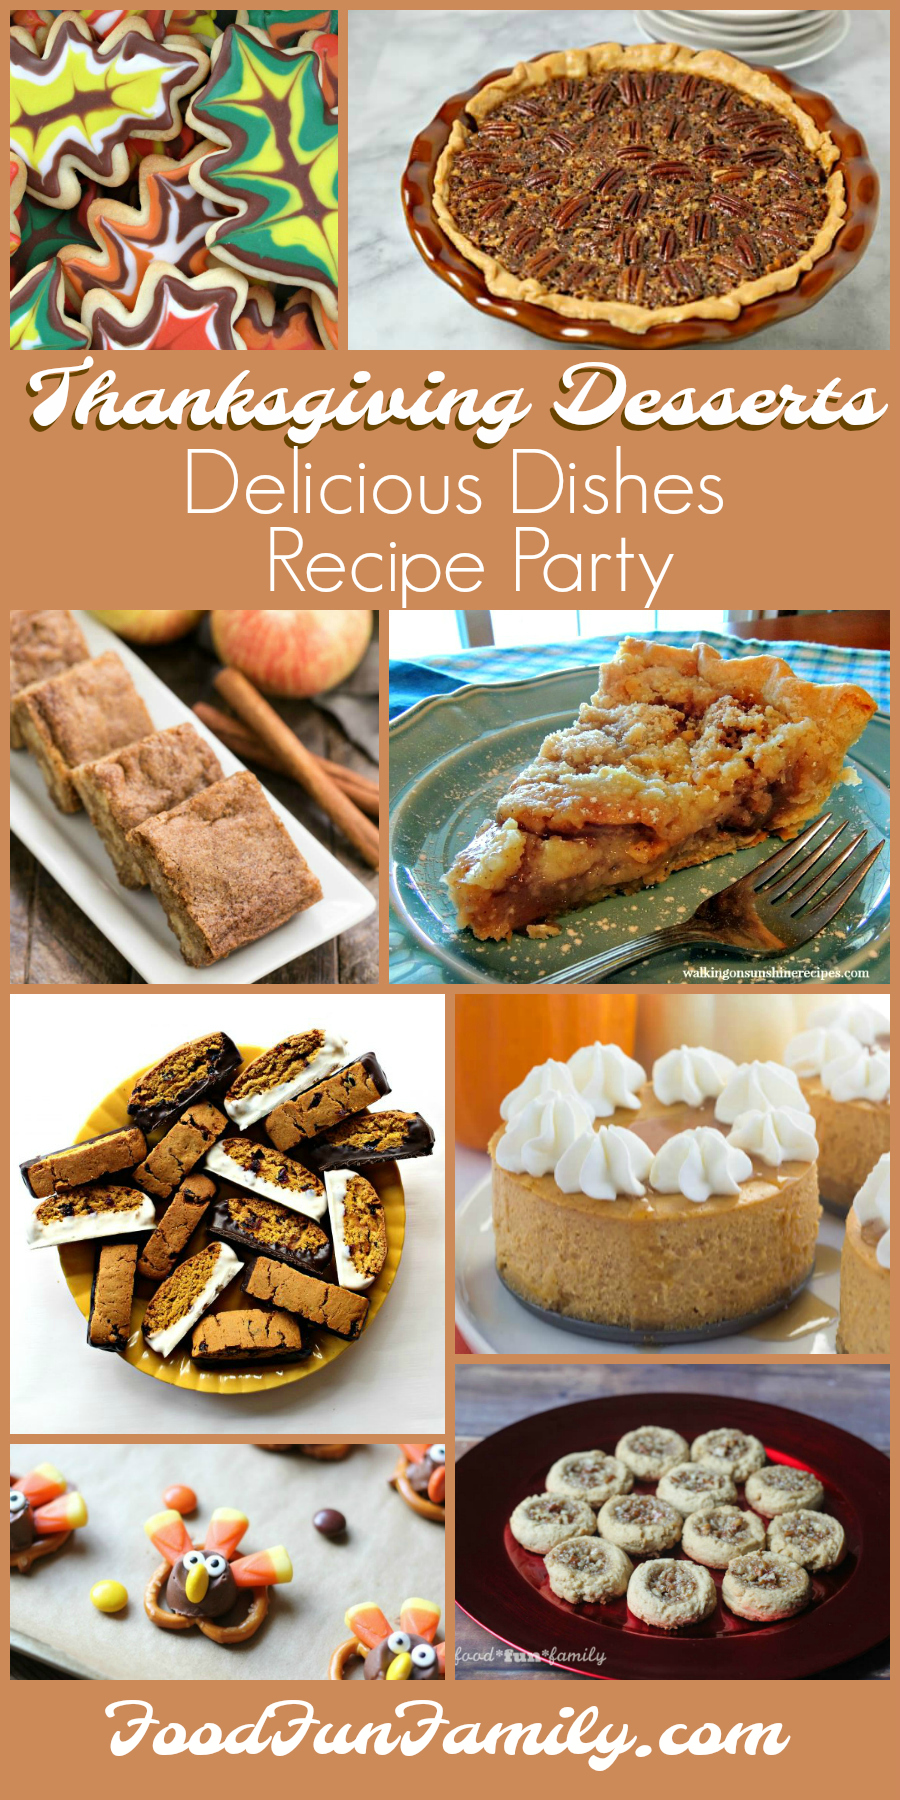 Thanksgiving desserts - Delicious Dishes Recipe Party